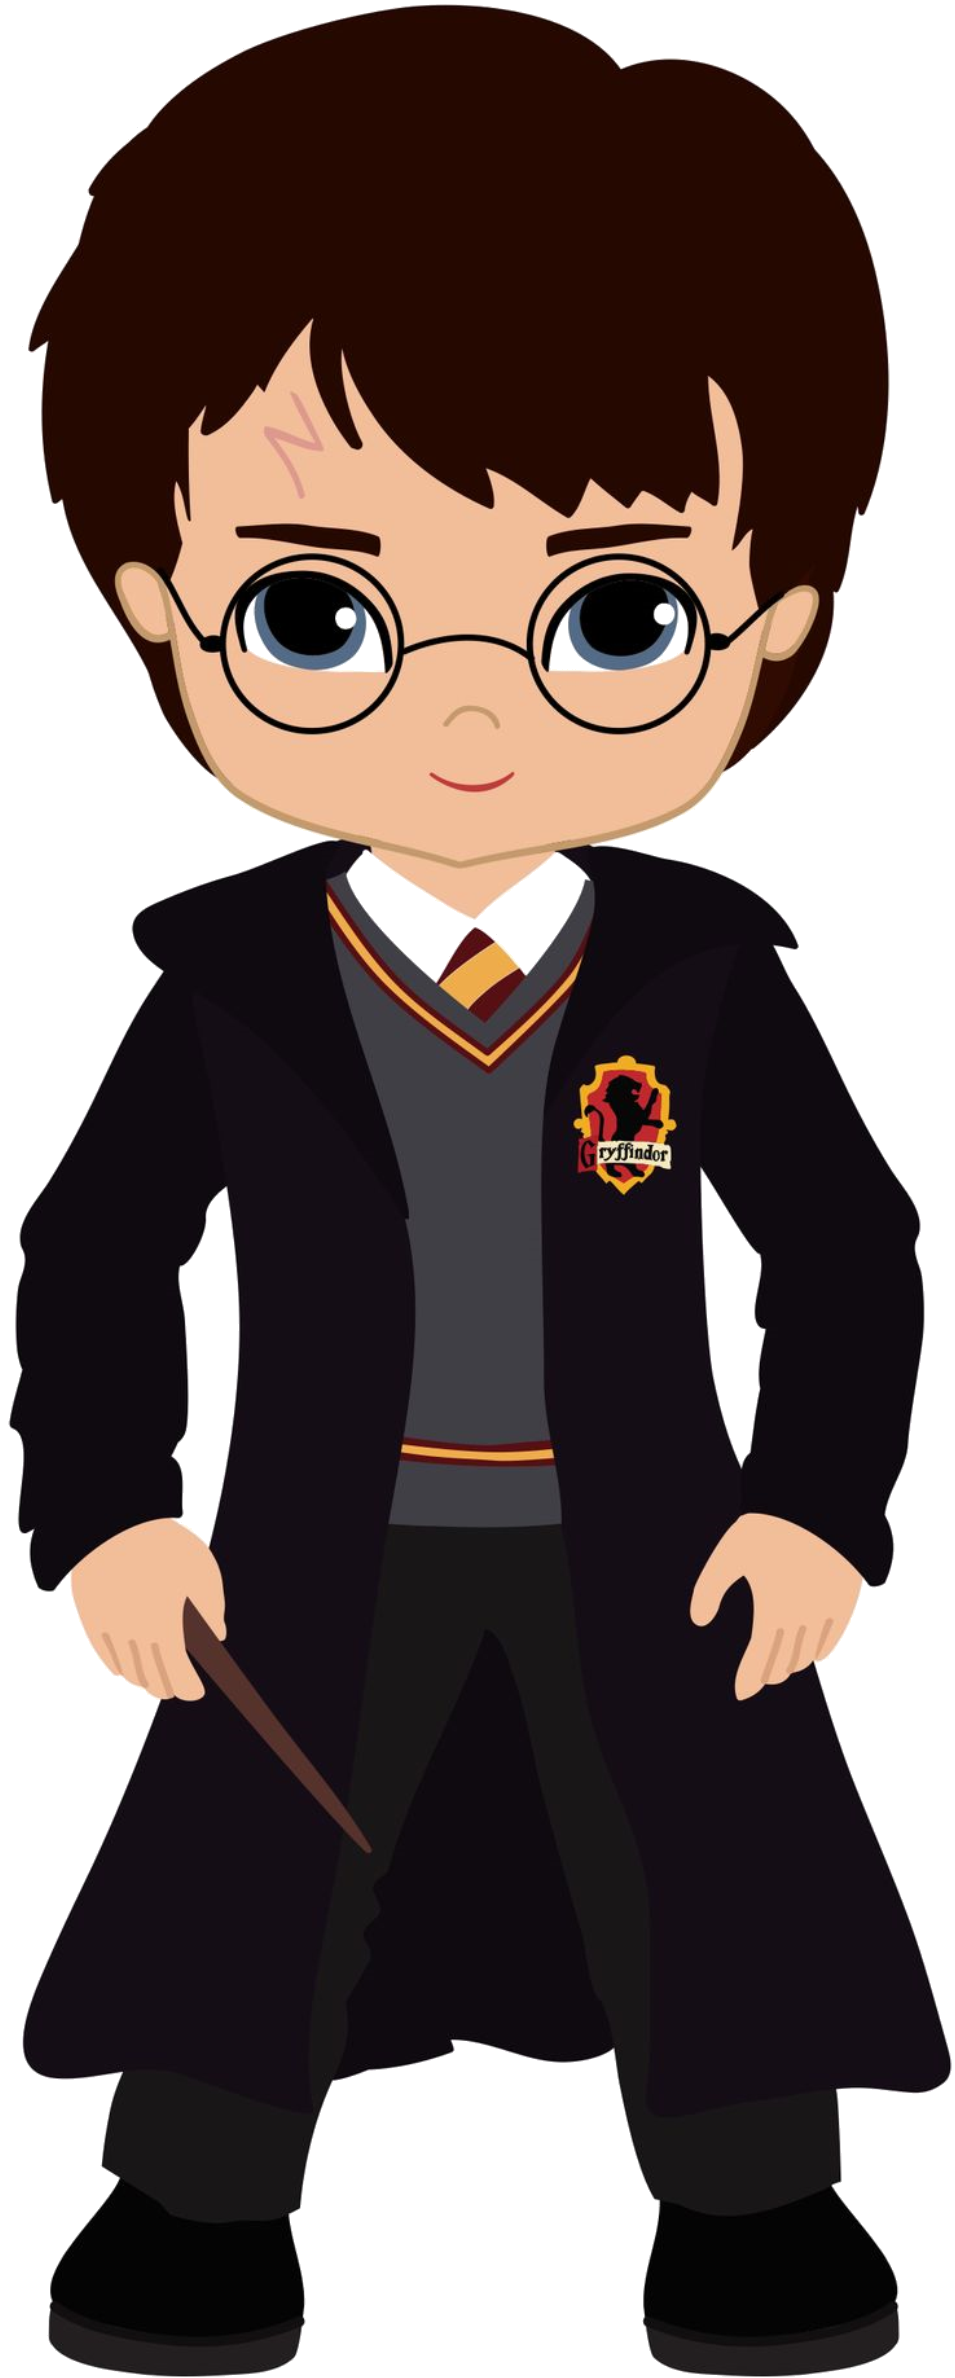 Hunting clipart stone age man. Our printable harry potter